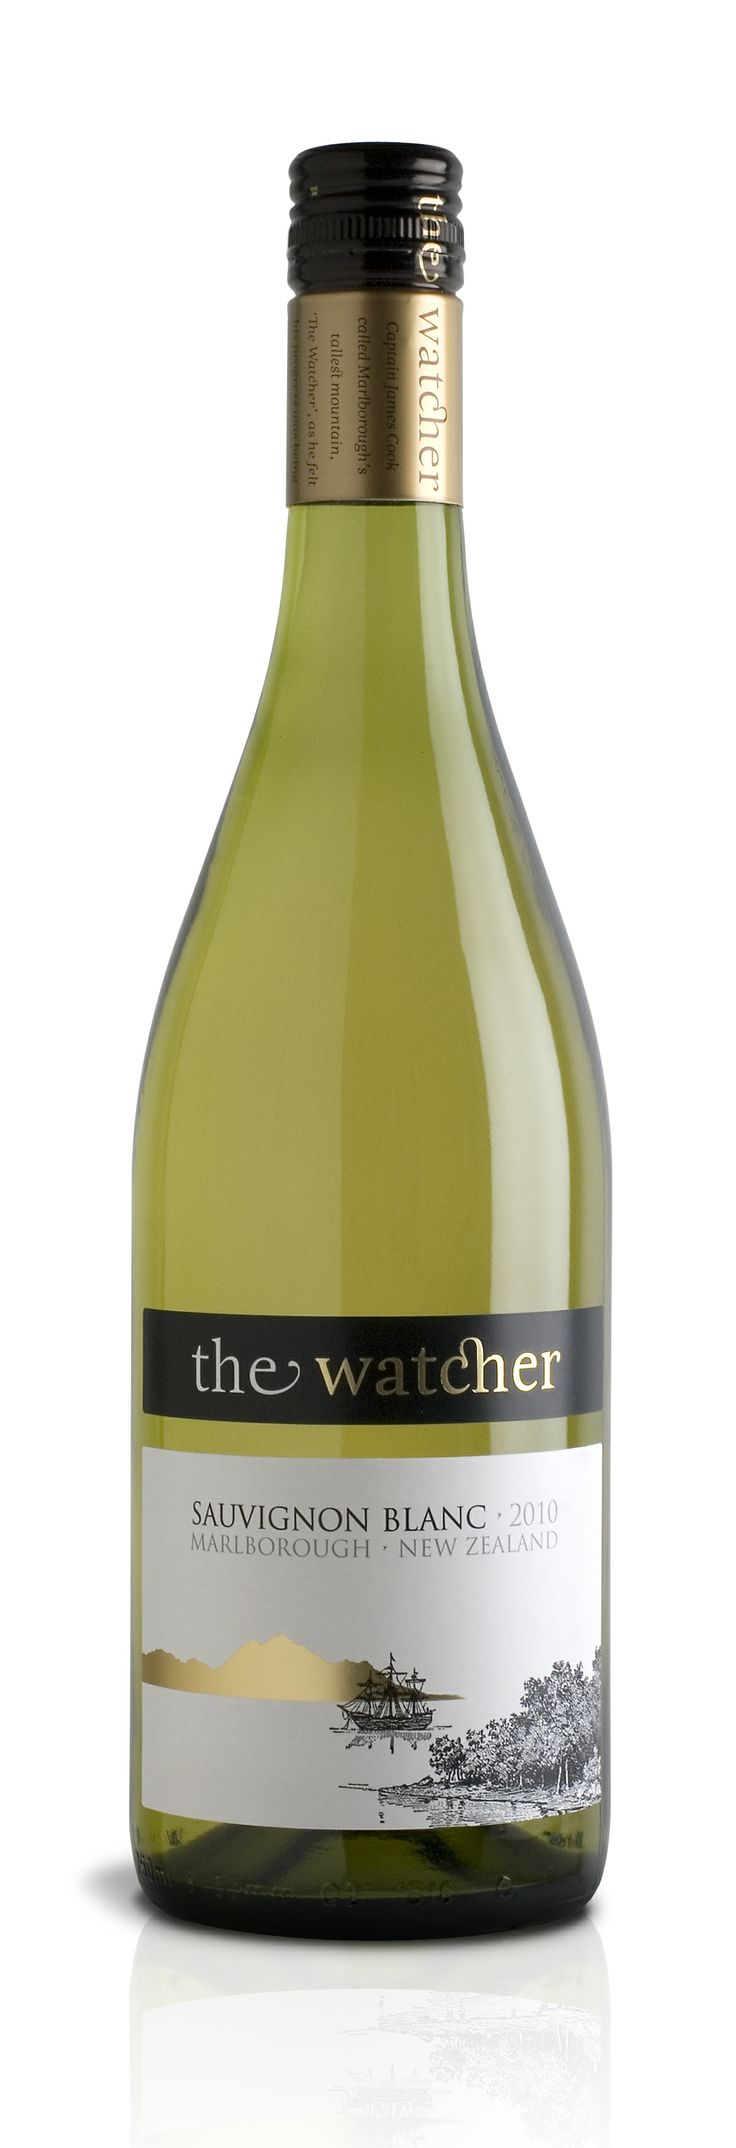 The Watcher – New Zealand Sauvignon Blanc with a story – Harpers Wine & Spirit Design Awards 2011 White Wine Design of the Year Trophy